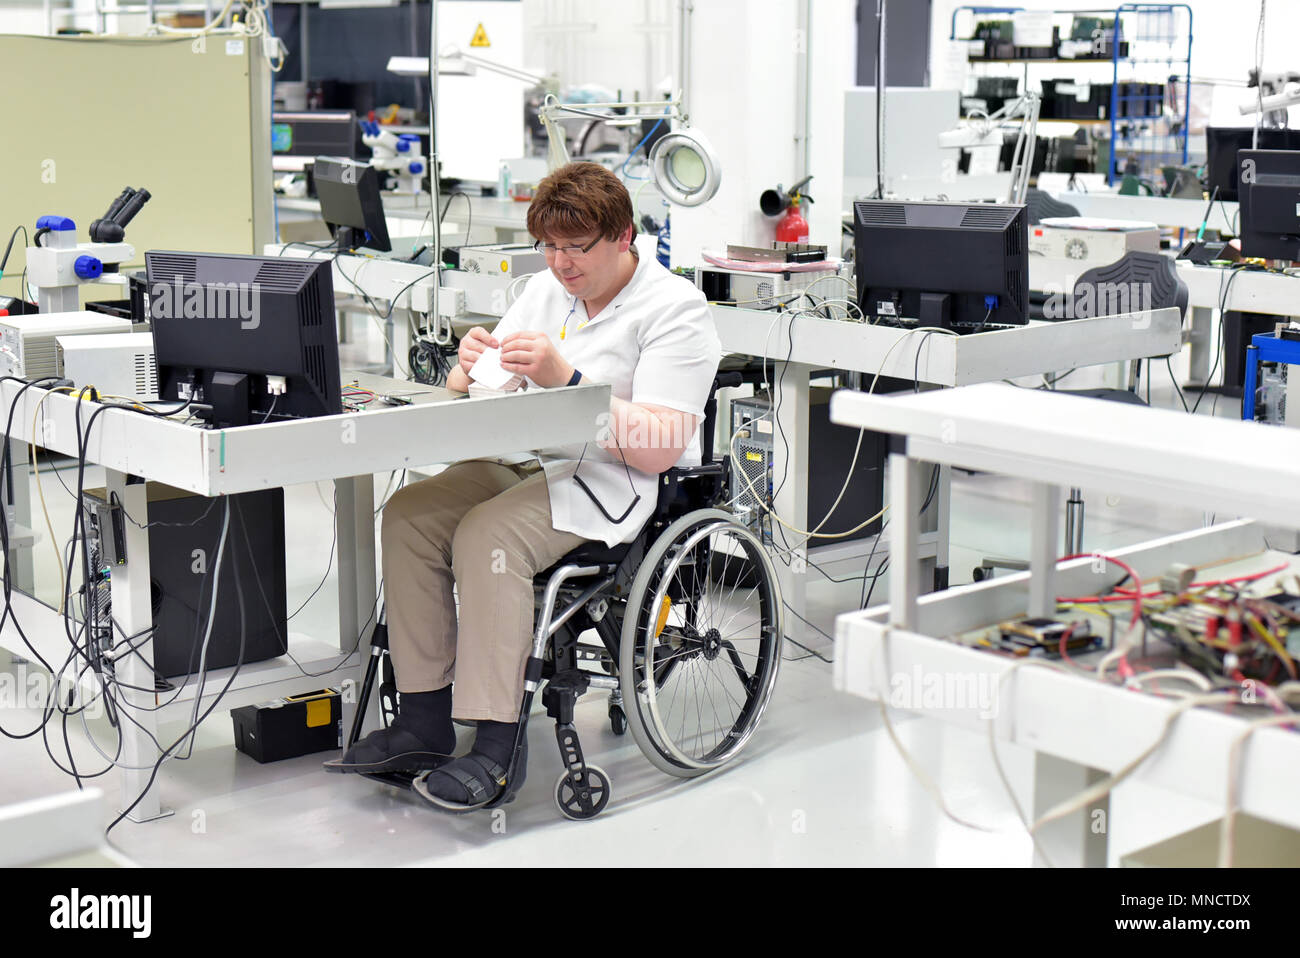 handicapped worker in a wheelchair assembling electronic components in a modern factory at the workplace - Stock Image